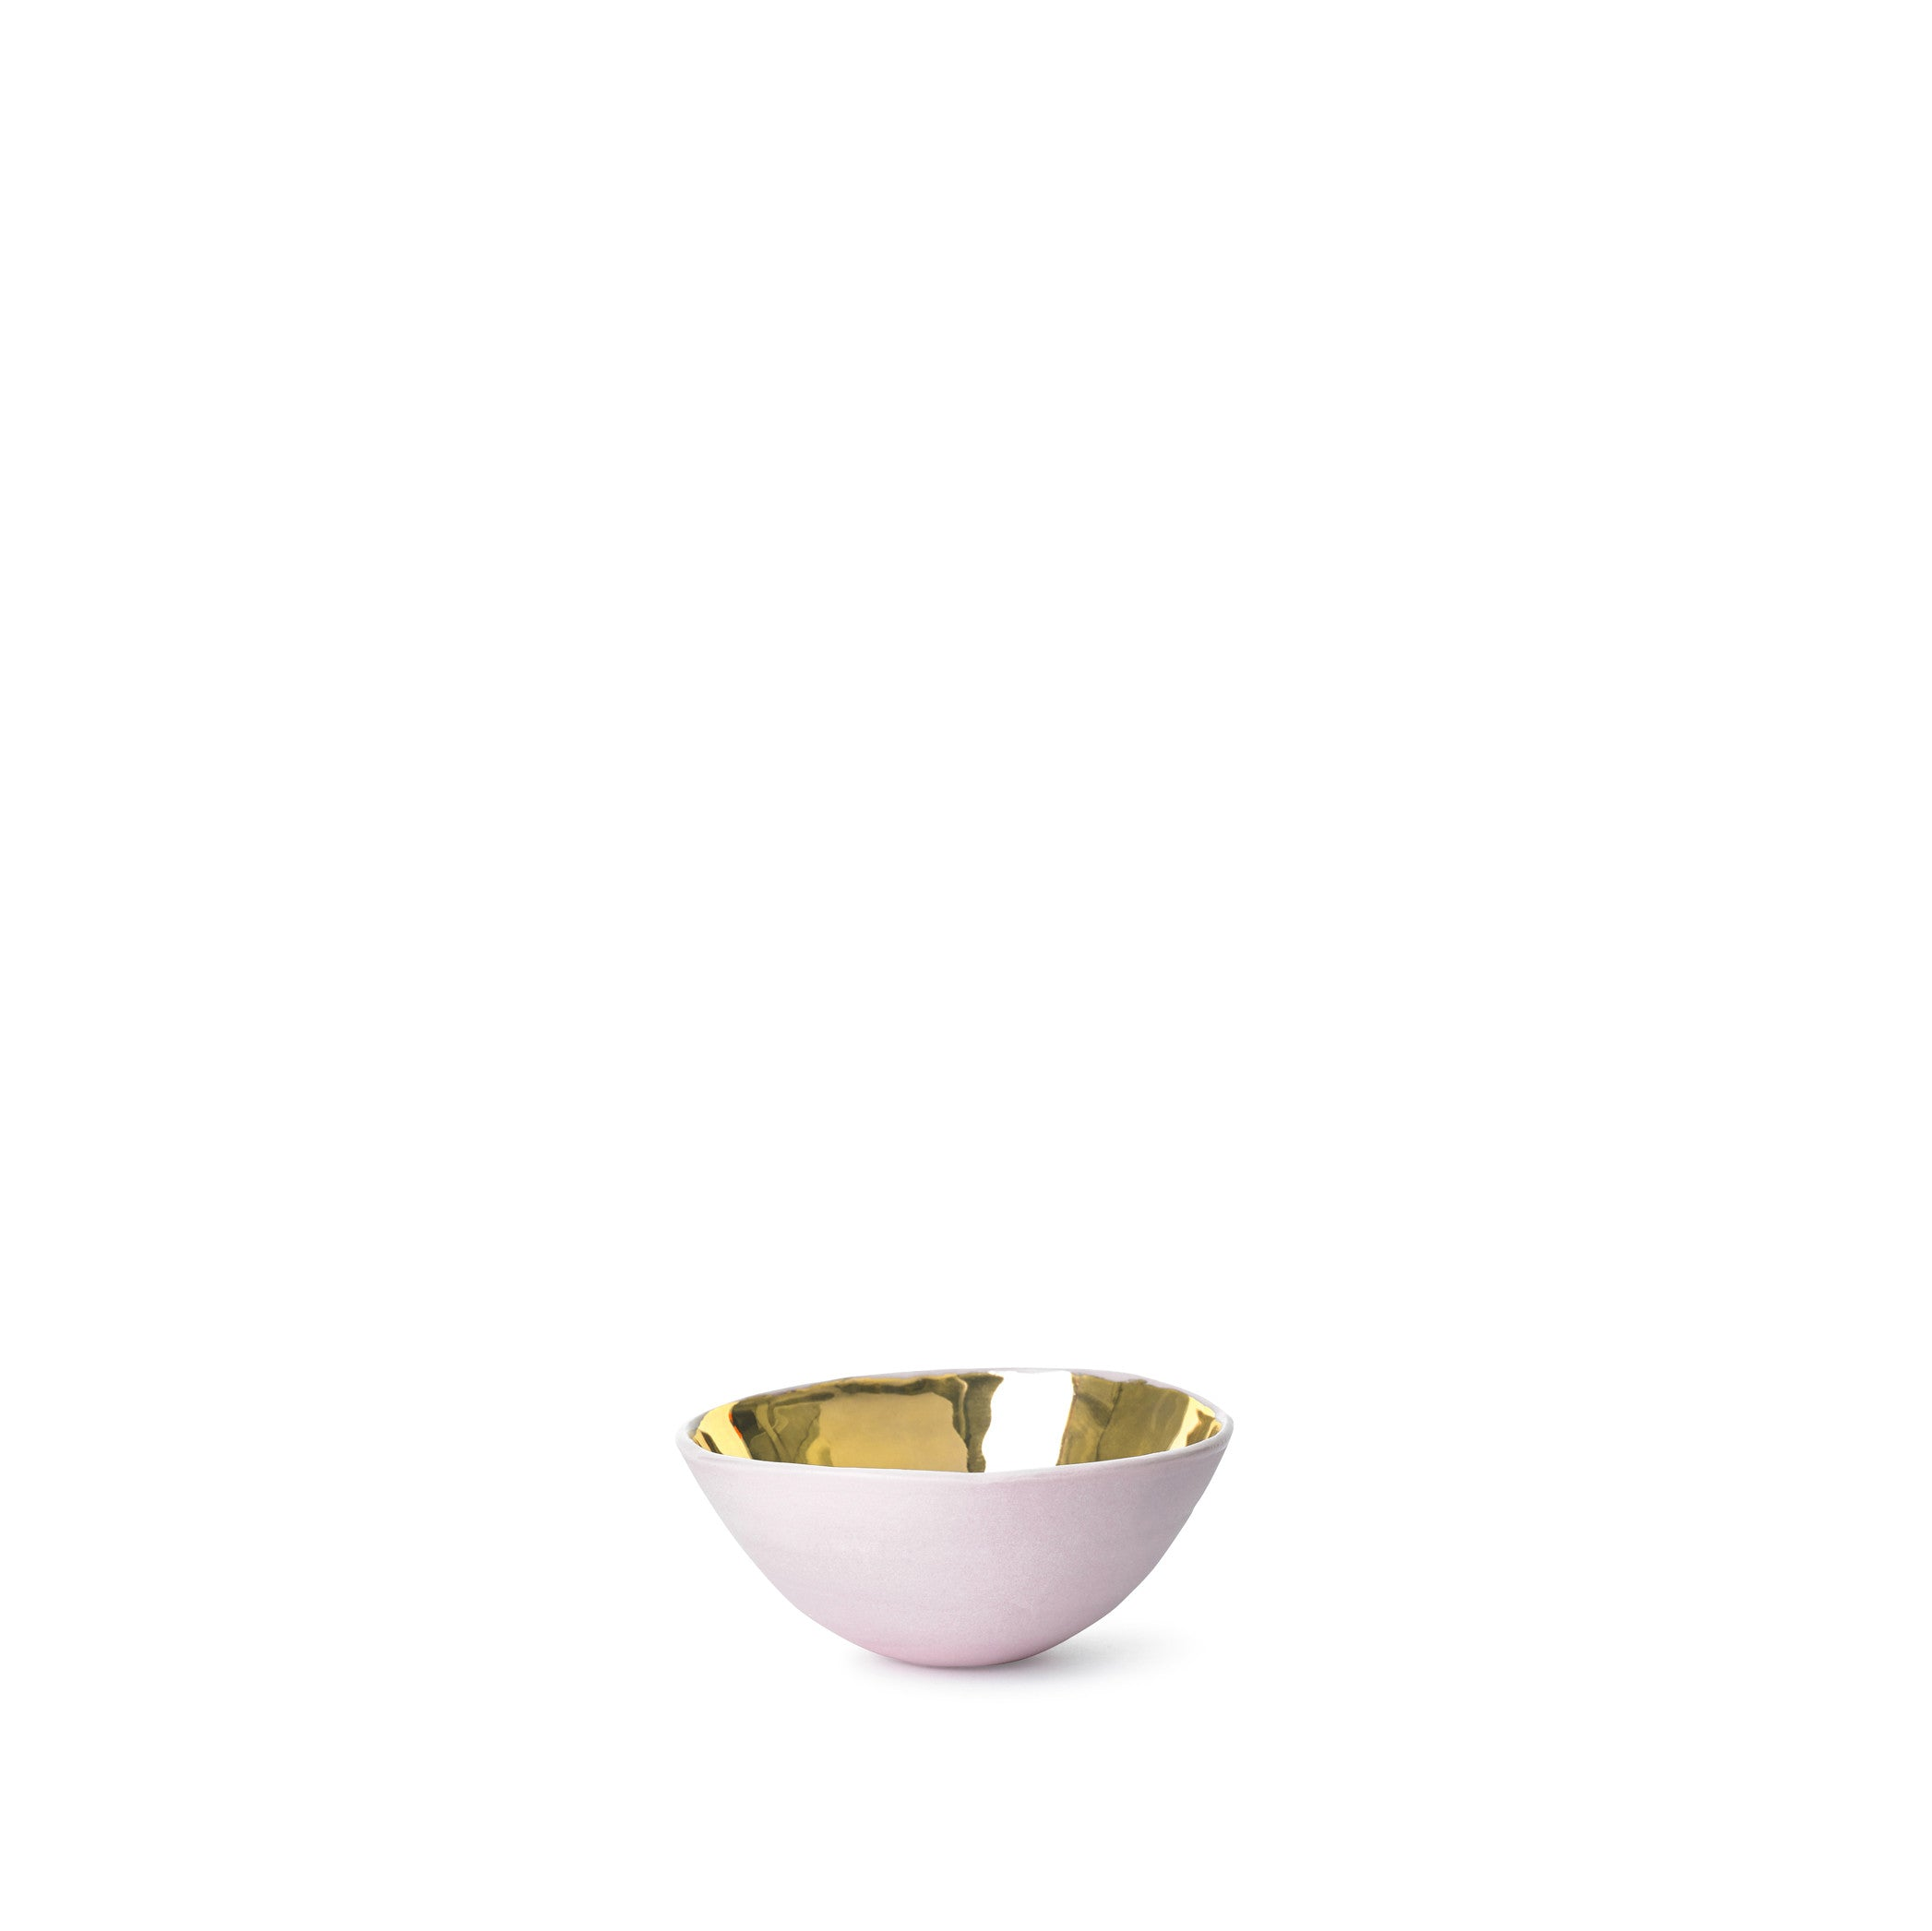 Full Painted Pink Ceramic Bowl with Gold Glaze, 6cm